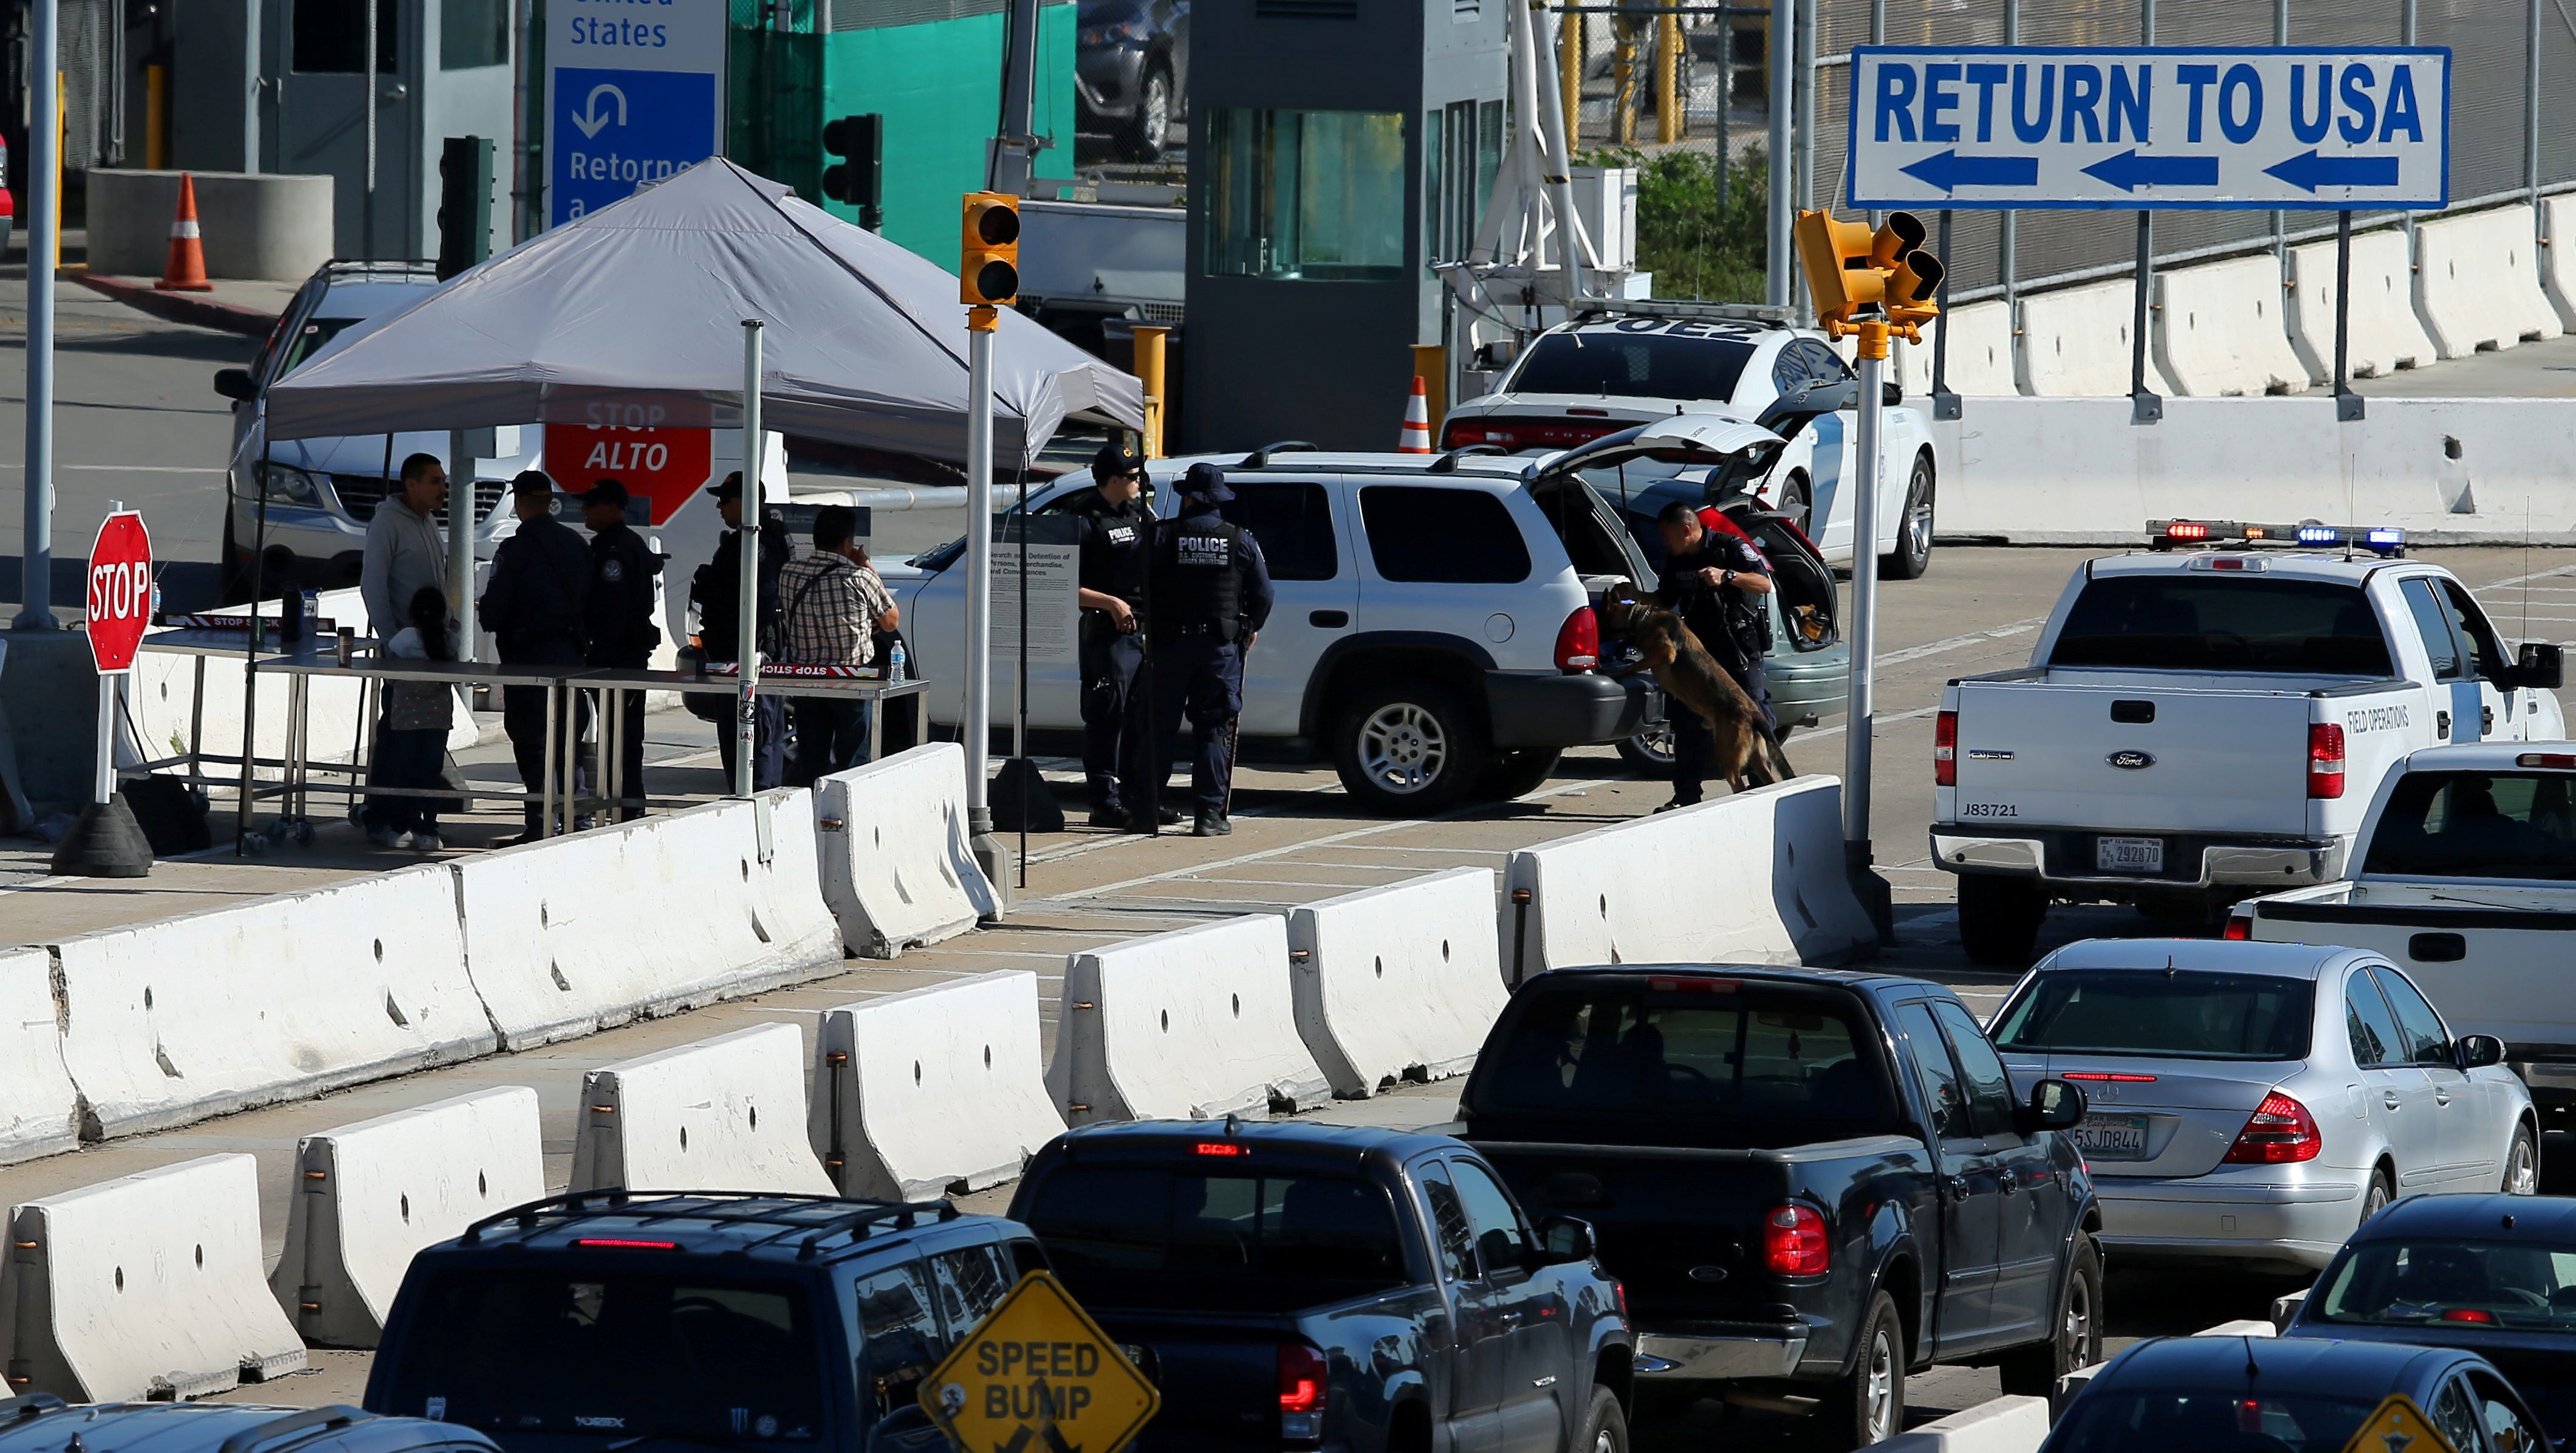 U.S. Customs and Border Patrol agents stop traffic heading into Mexico to check vehicles leaving the country in San Ysidro, California,